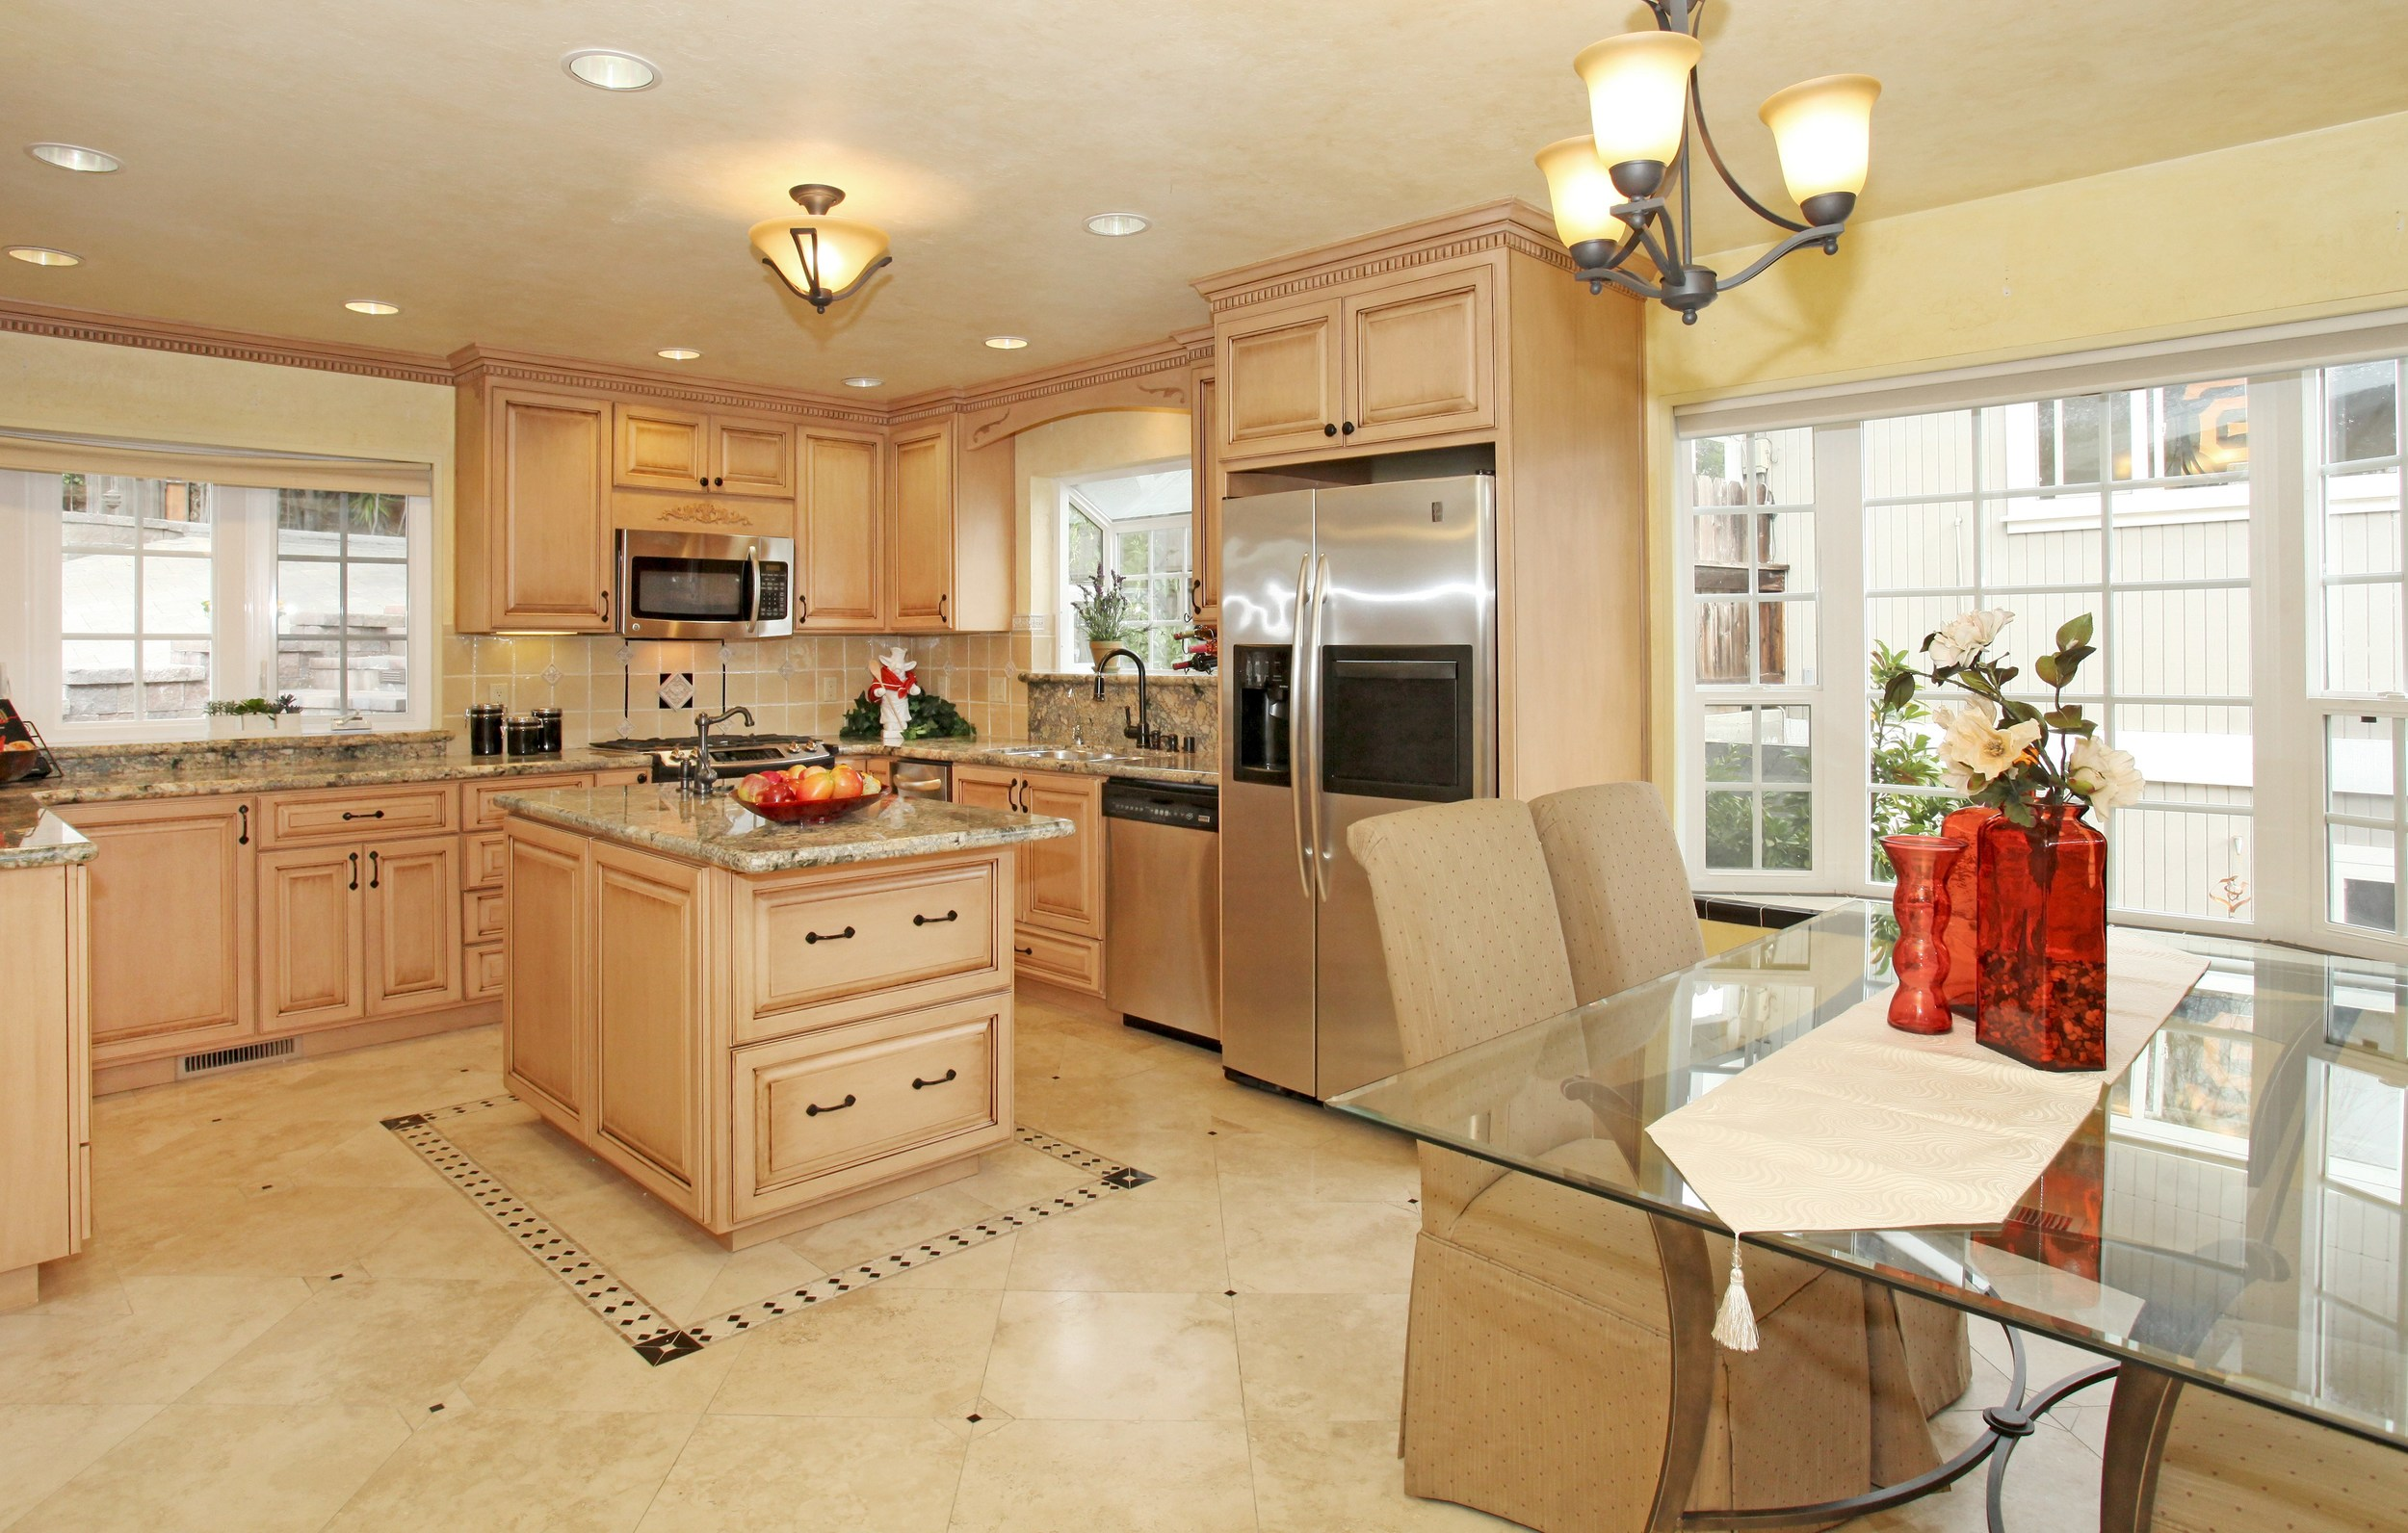 007_Kitchen and Dining Room .jpg